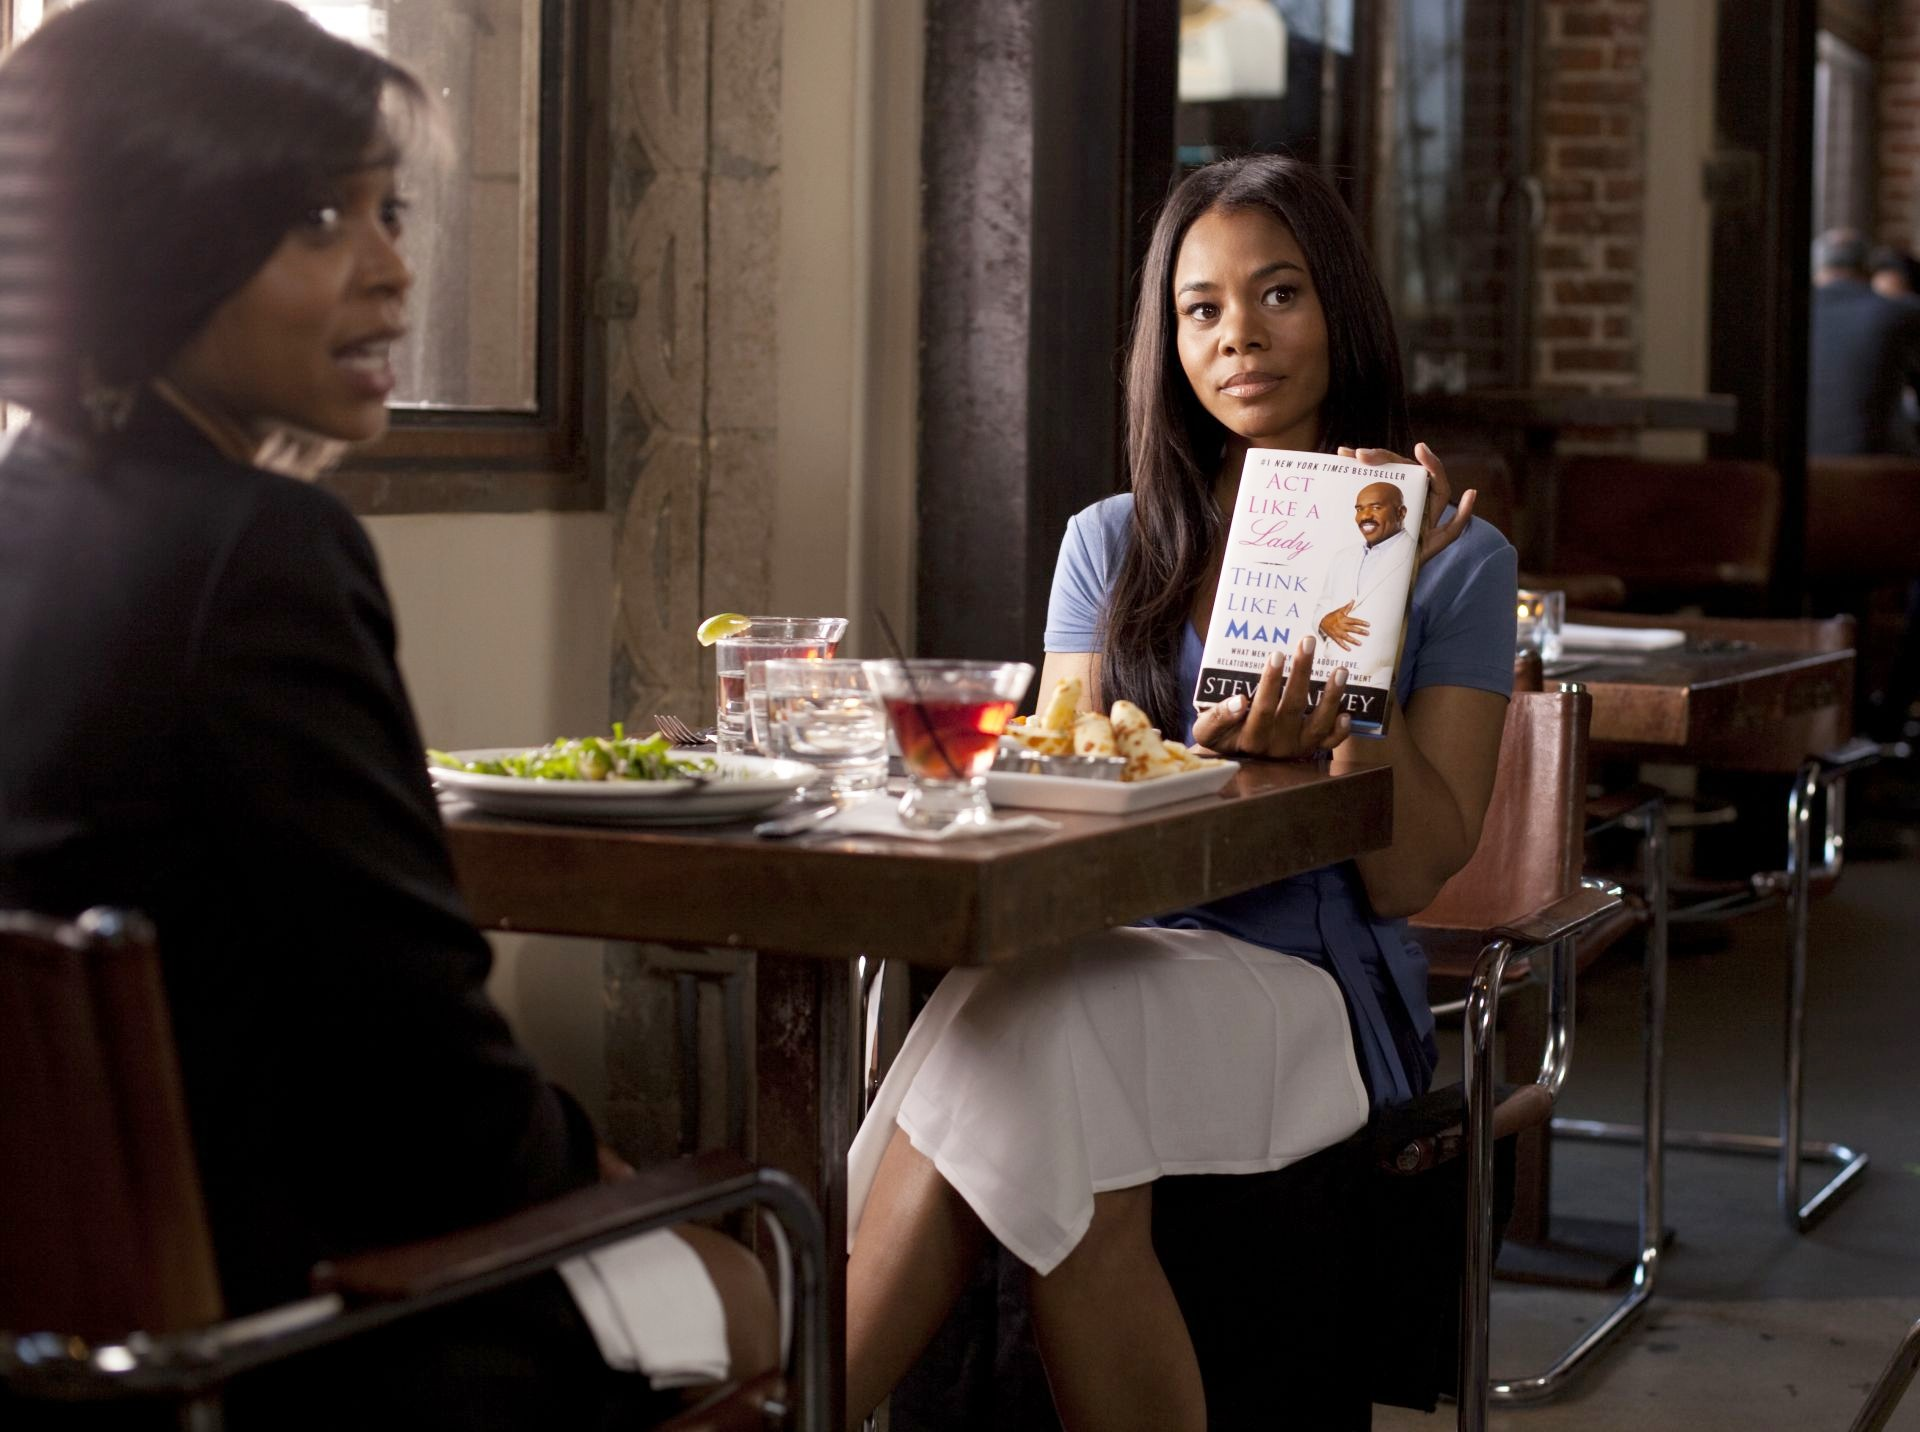 Taraji P. Henson stars as Lauren and Regina Hall stars as Candice in Screen Gems' Think Like a Man (2012). Photo credit by Photo by Alan Markfield.